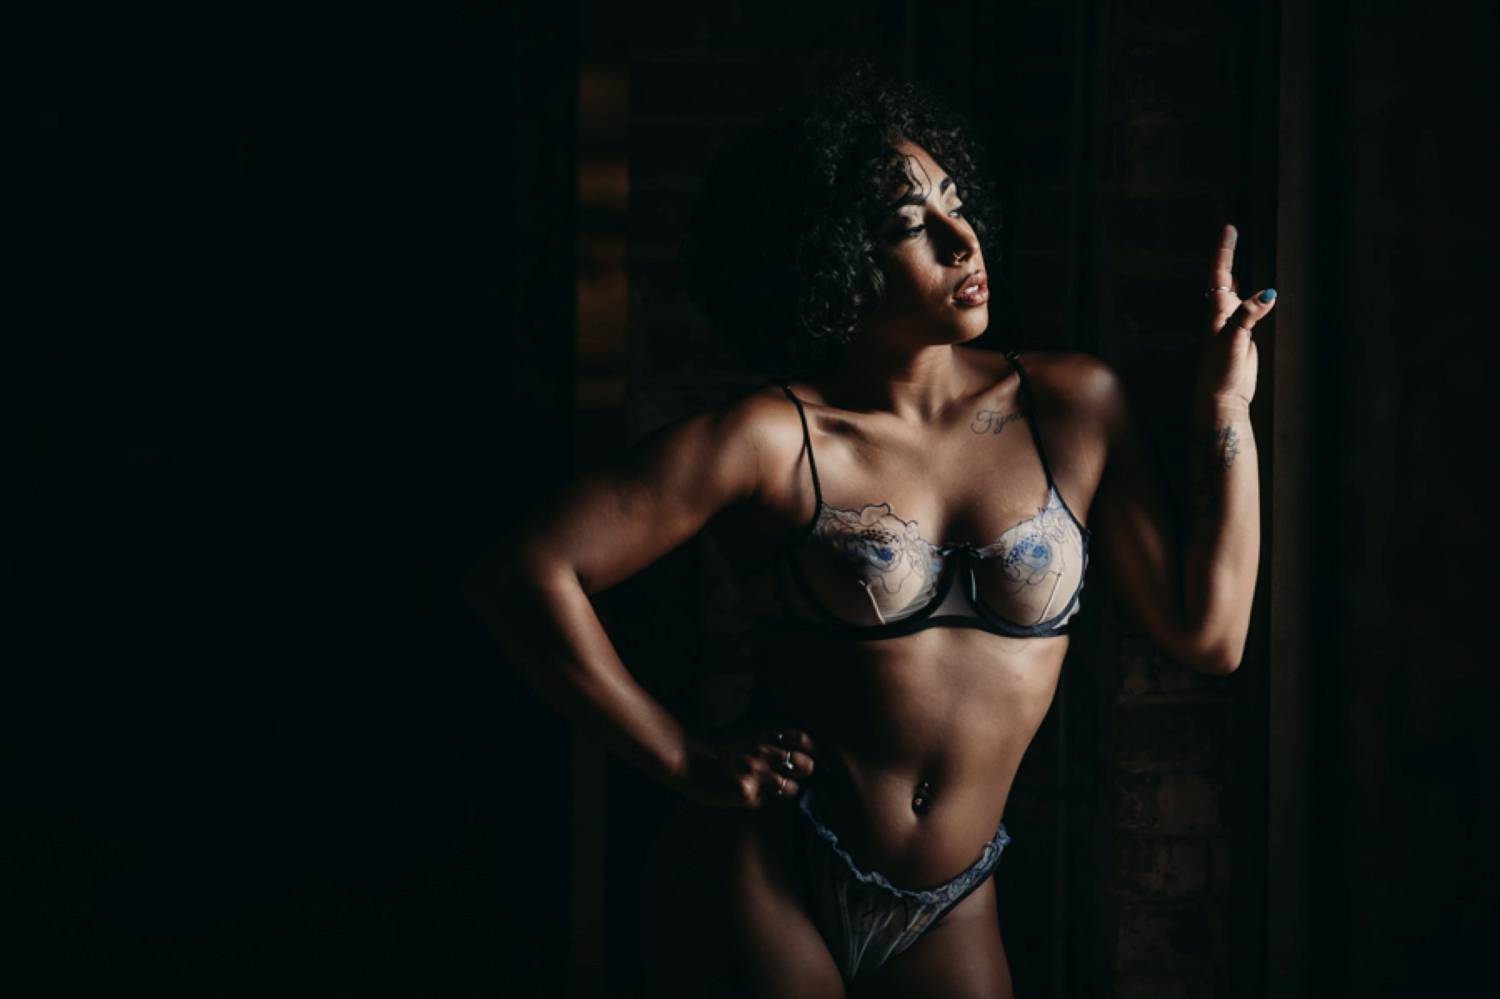 A woman in a purple bra and panties stands in window light and poses so her muscles are well-defined. Learn how to take boudoir photos like this one and more!